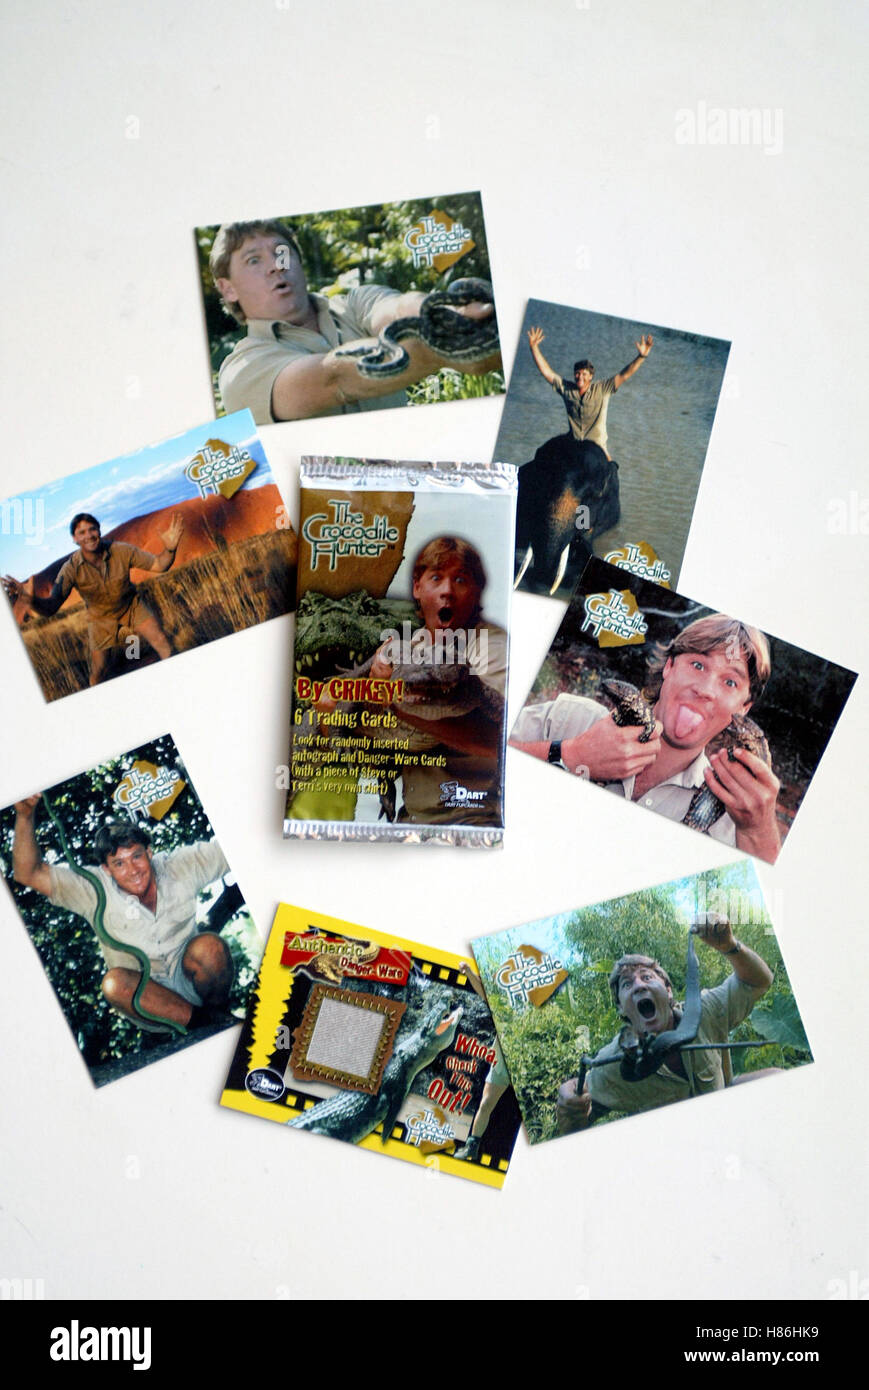 For some extra security to fall back on if times get tough or to help build y. Crocodile Hunter Trading Cards Trading Cards Usa Los Angeles Los Angeles Usa 20 December 2002 Stock Photo Alamy